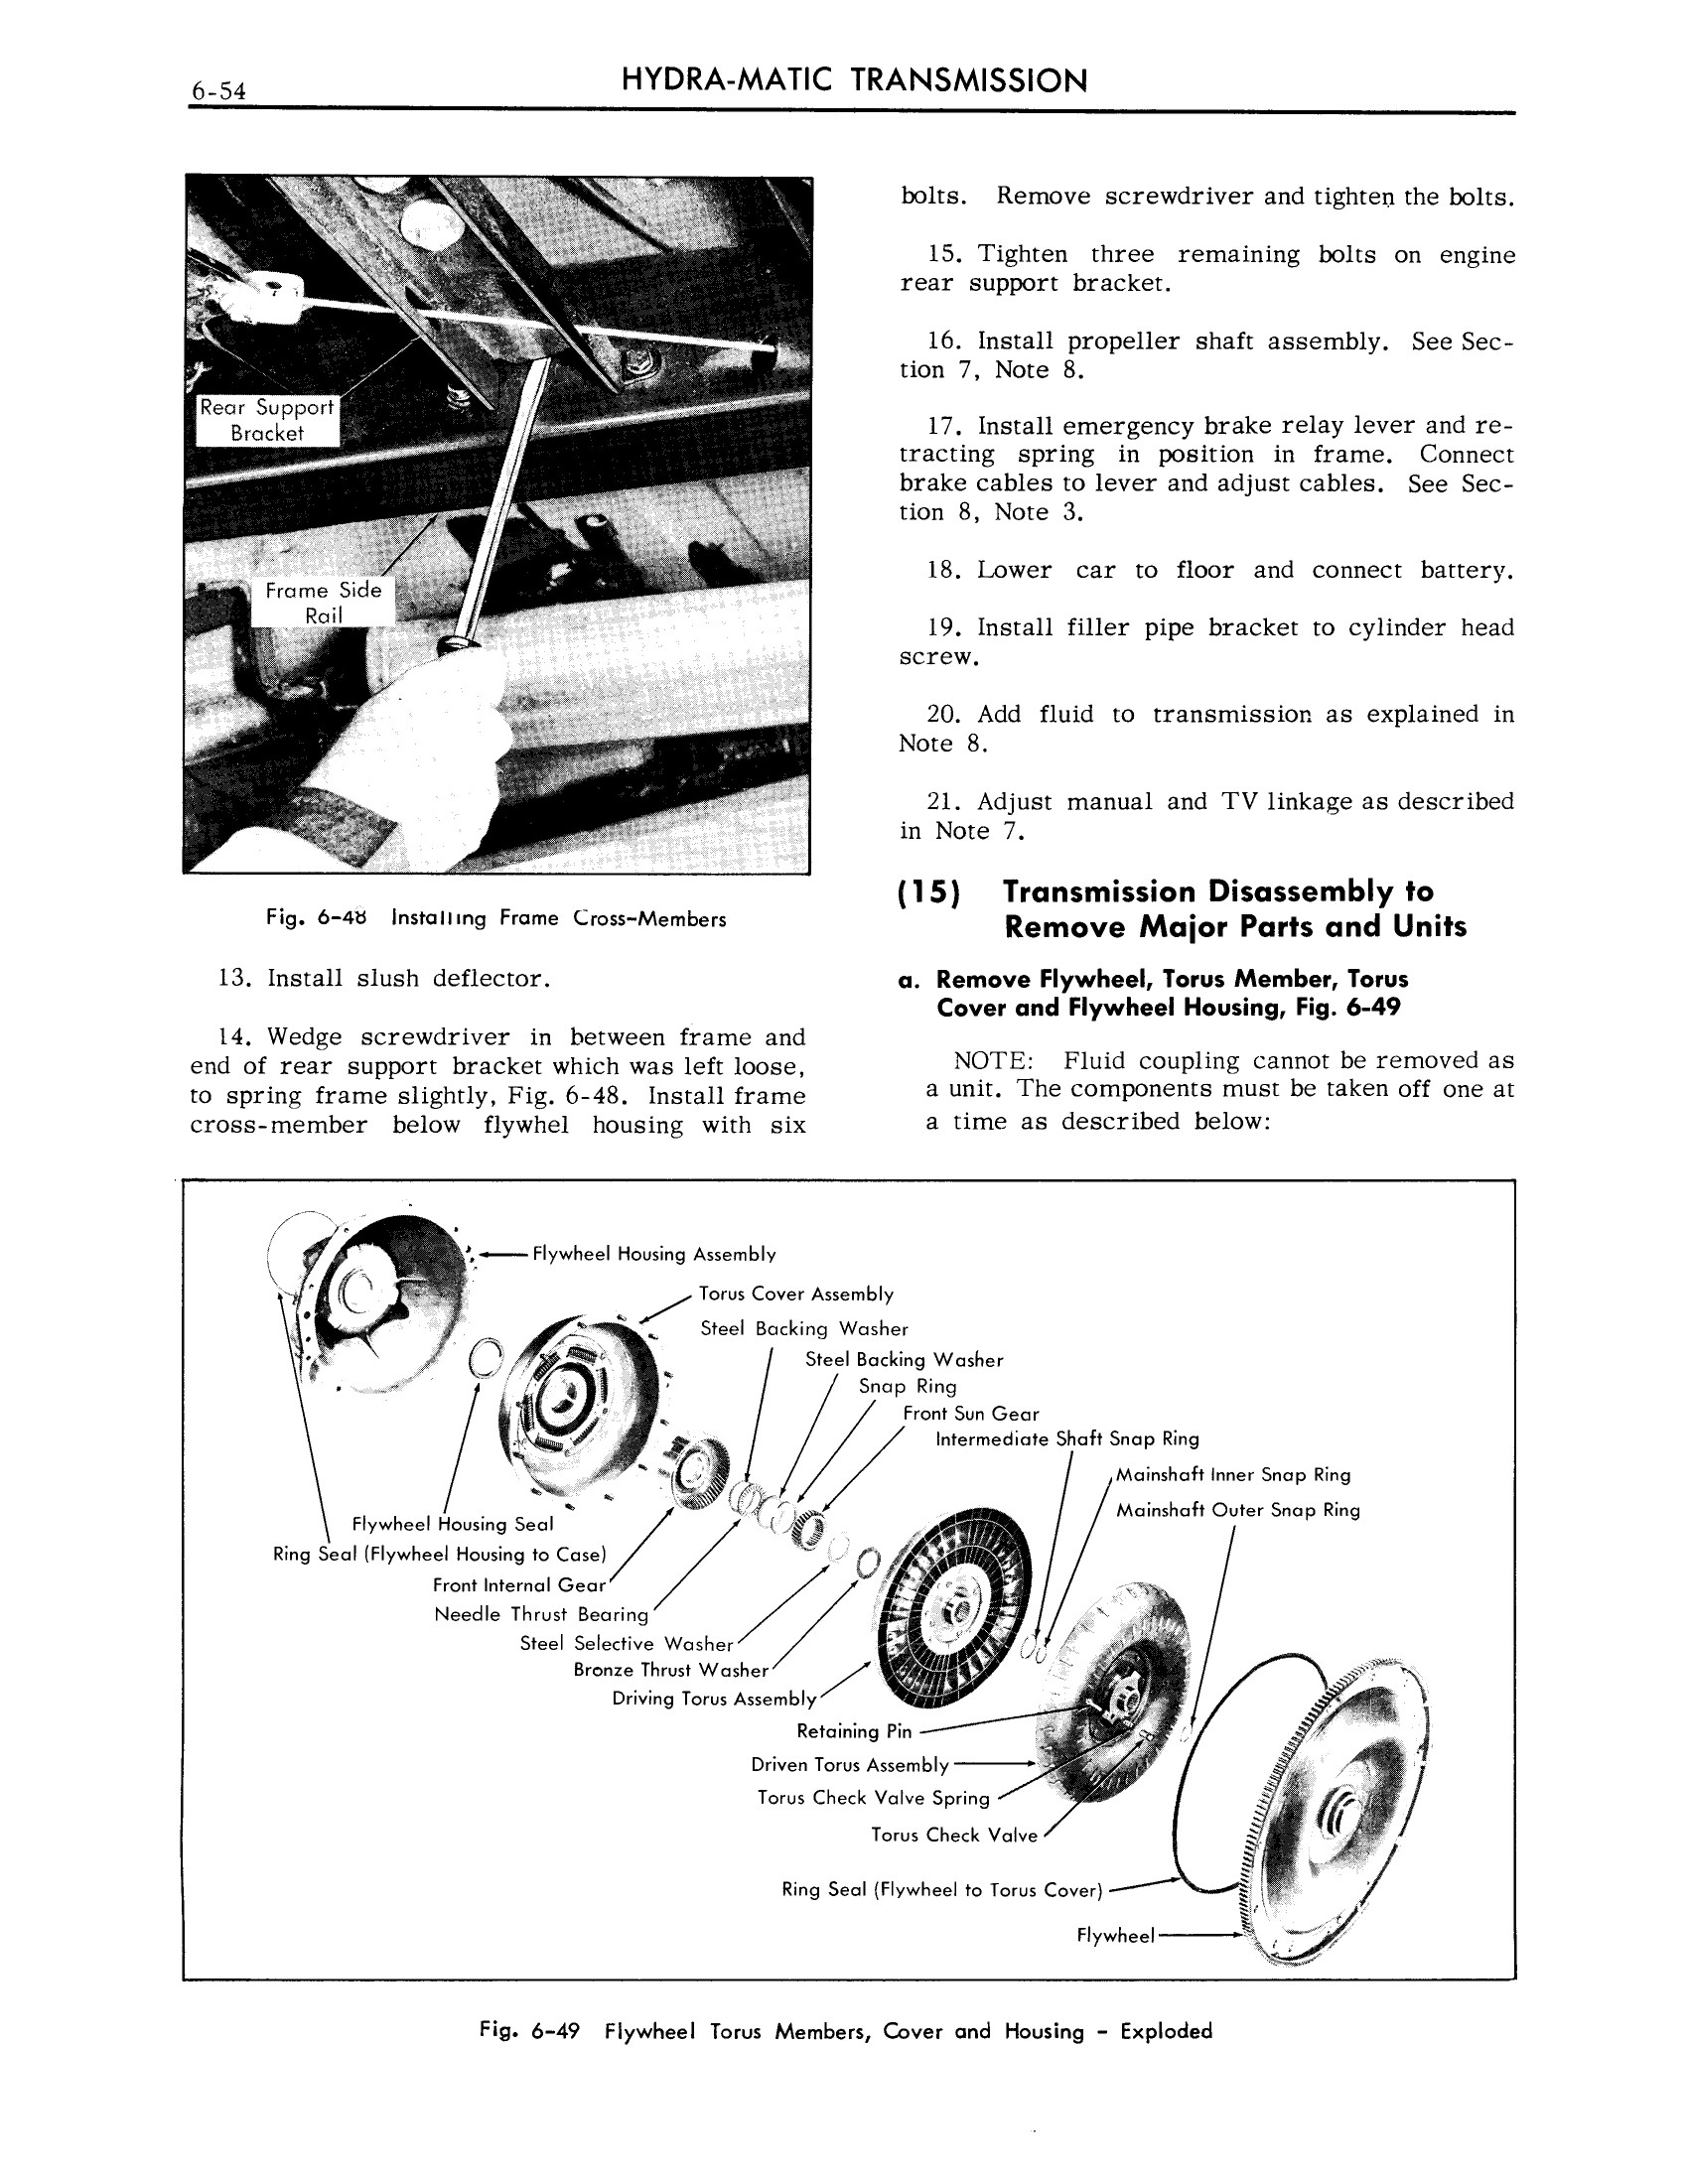 1959 Cadillac Shop Manual- Hydra-Matic Page 54 of 89